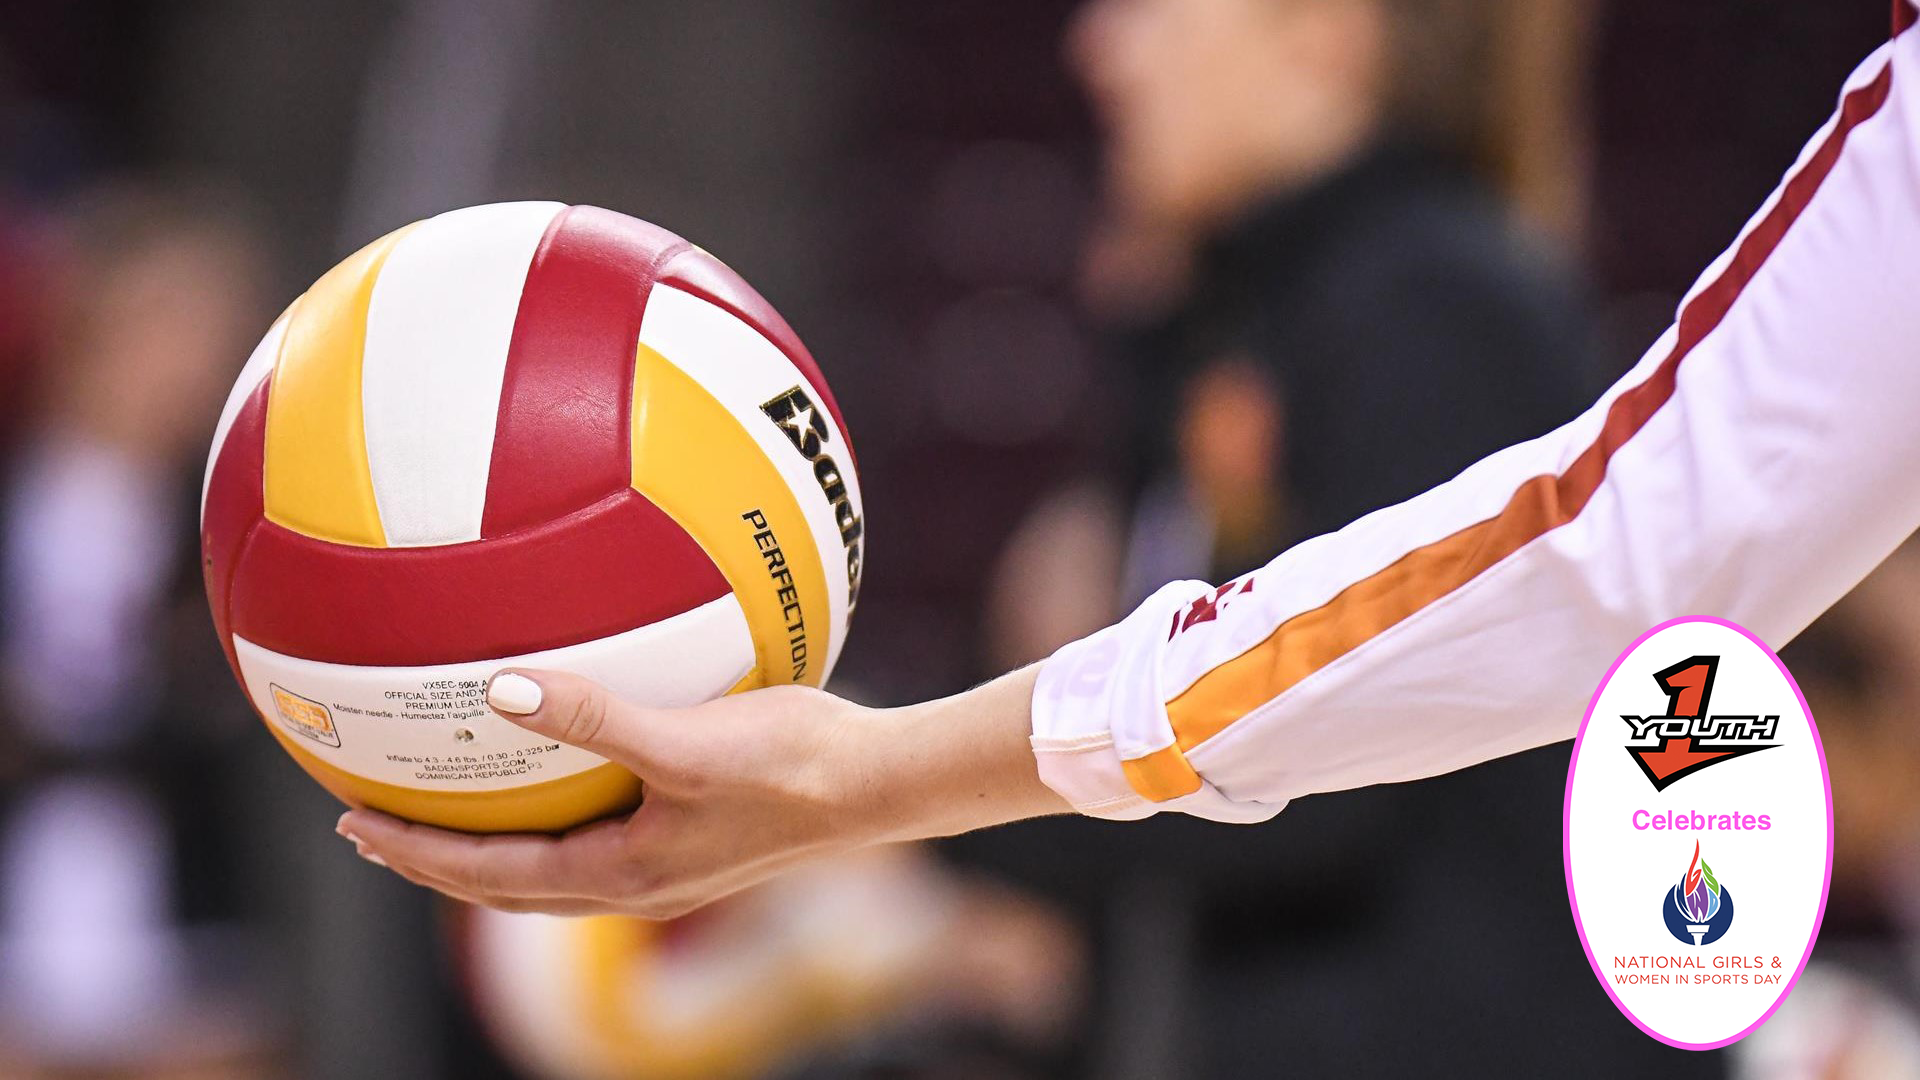 Need ideas for girls volleyball practice? Start with this video.